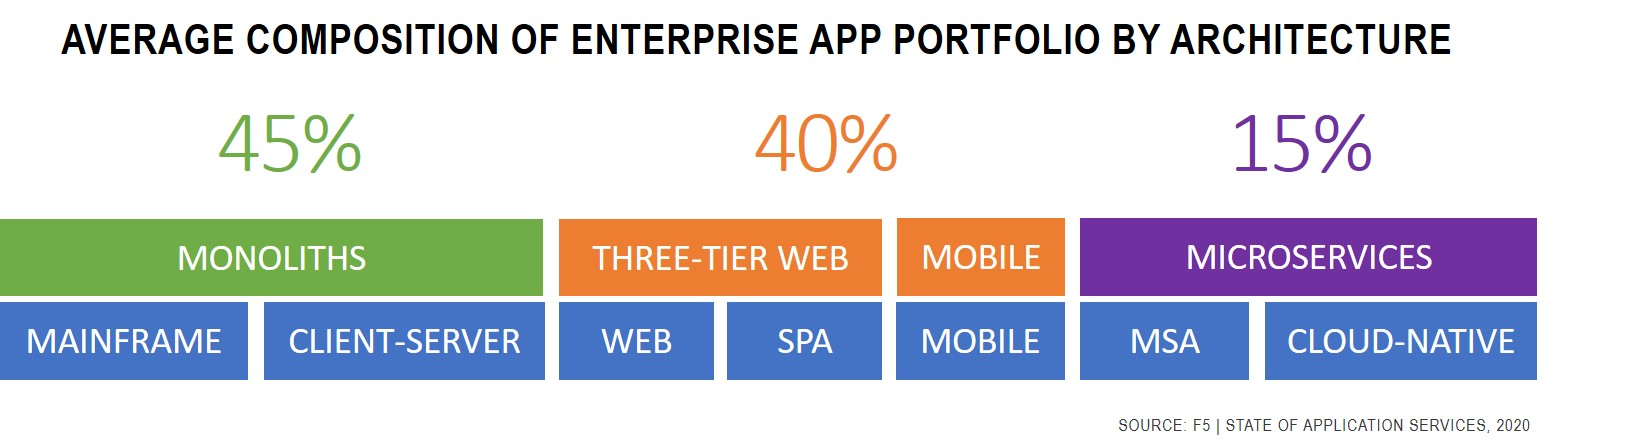 Average composition of enterprise app portfolio by architecture